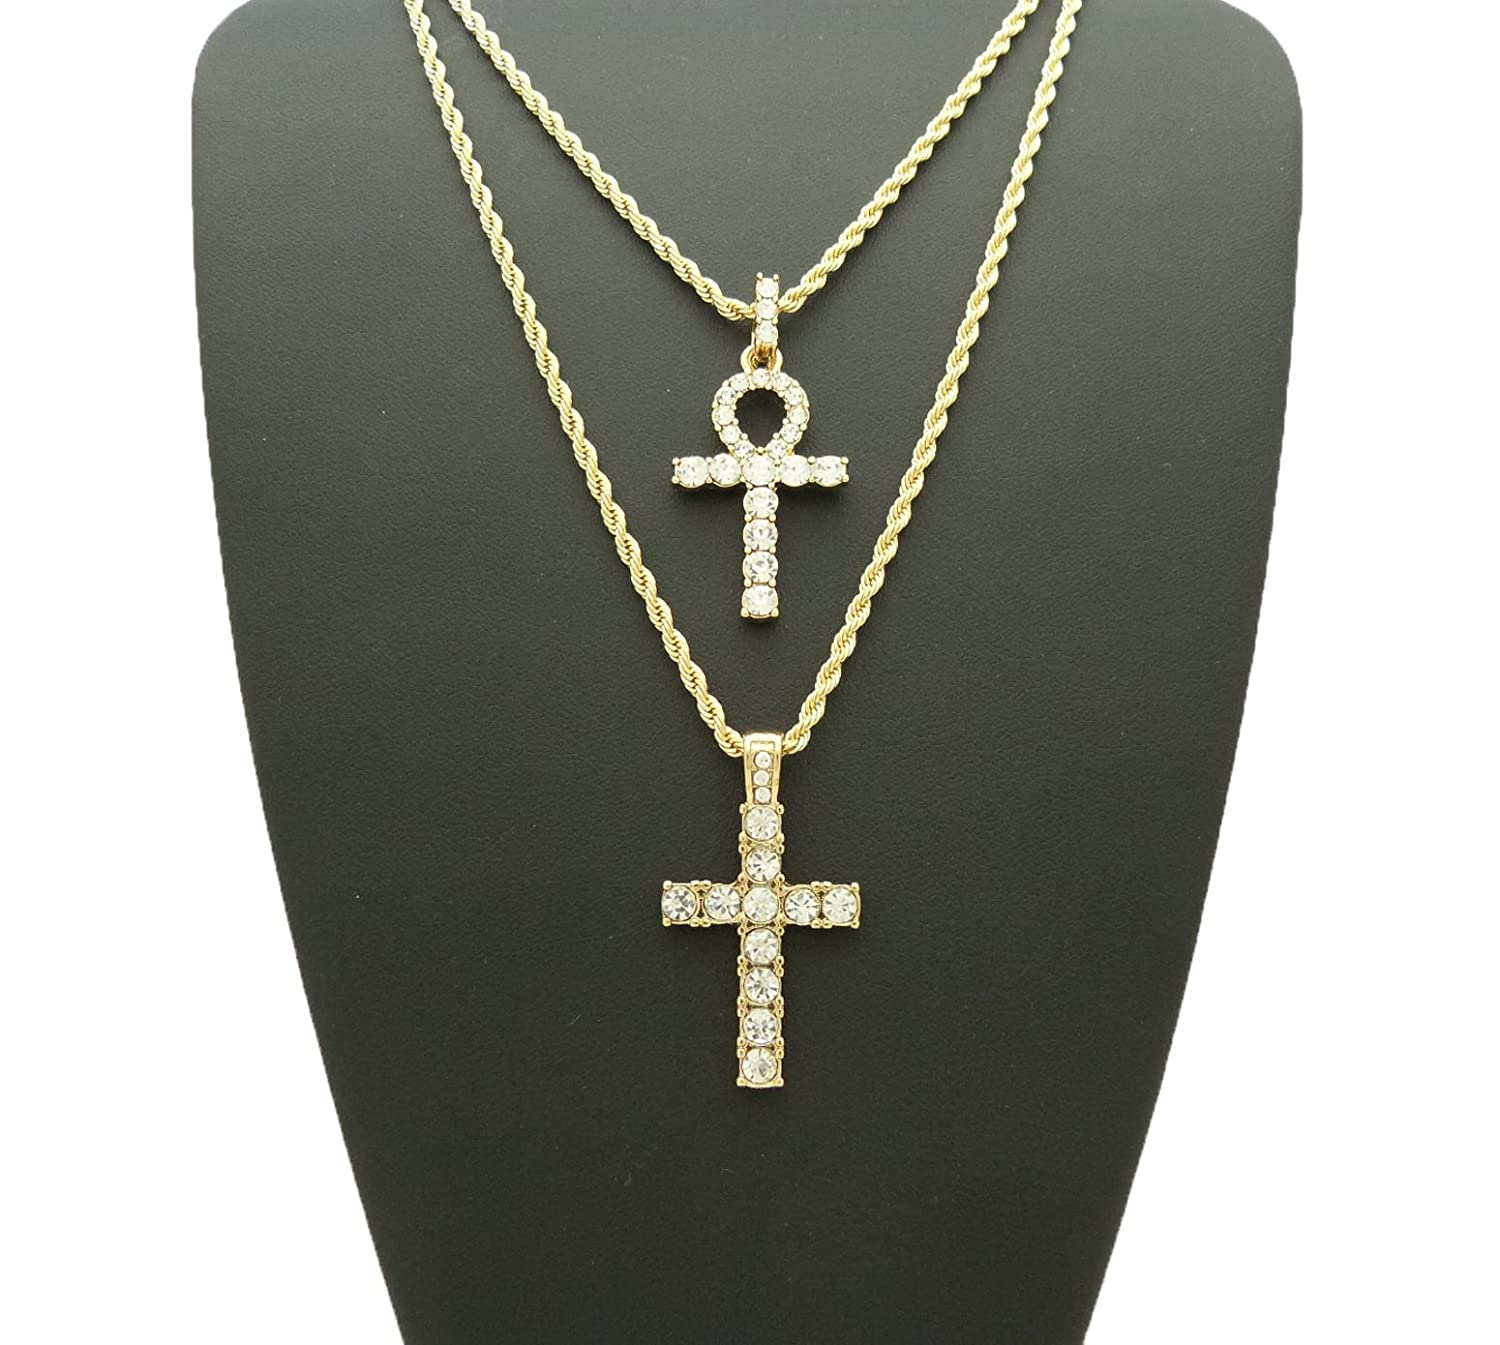 jewelry cuban accessories link micro chains and the gods gold designer mock curbed chain